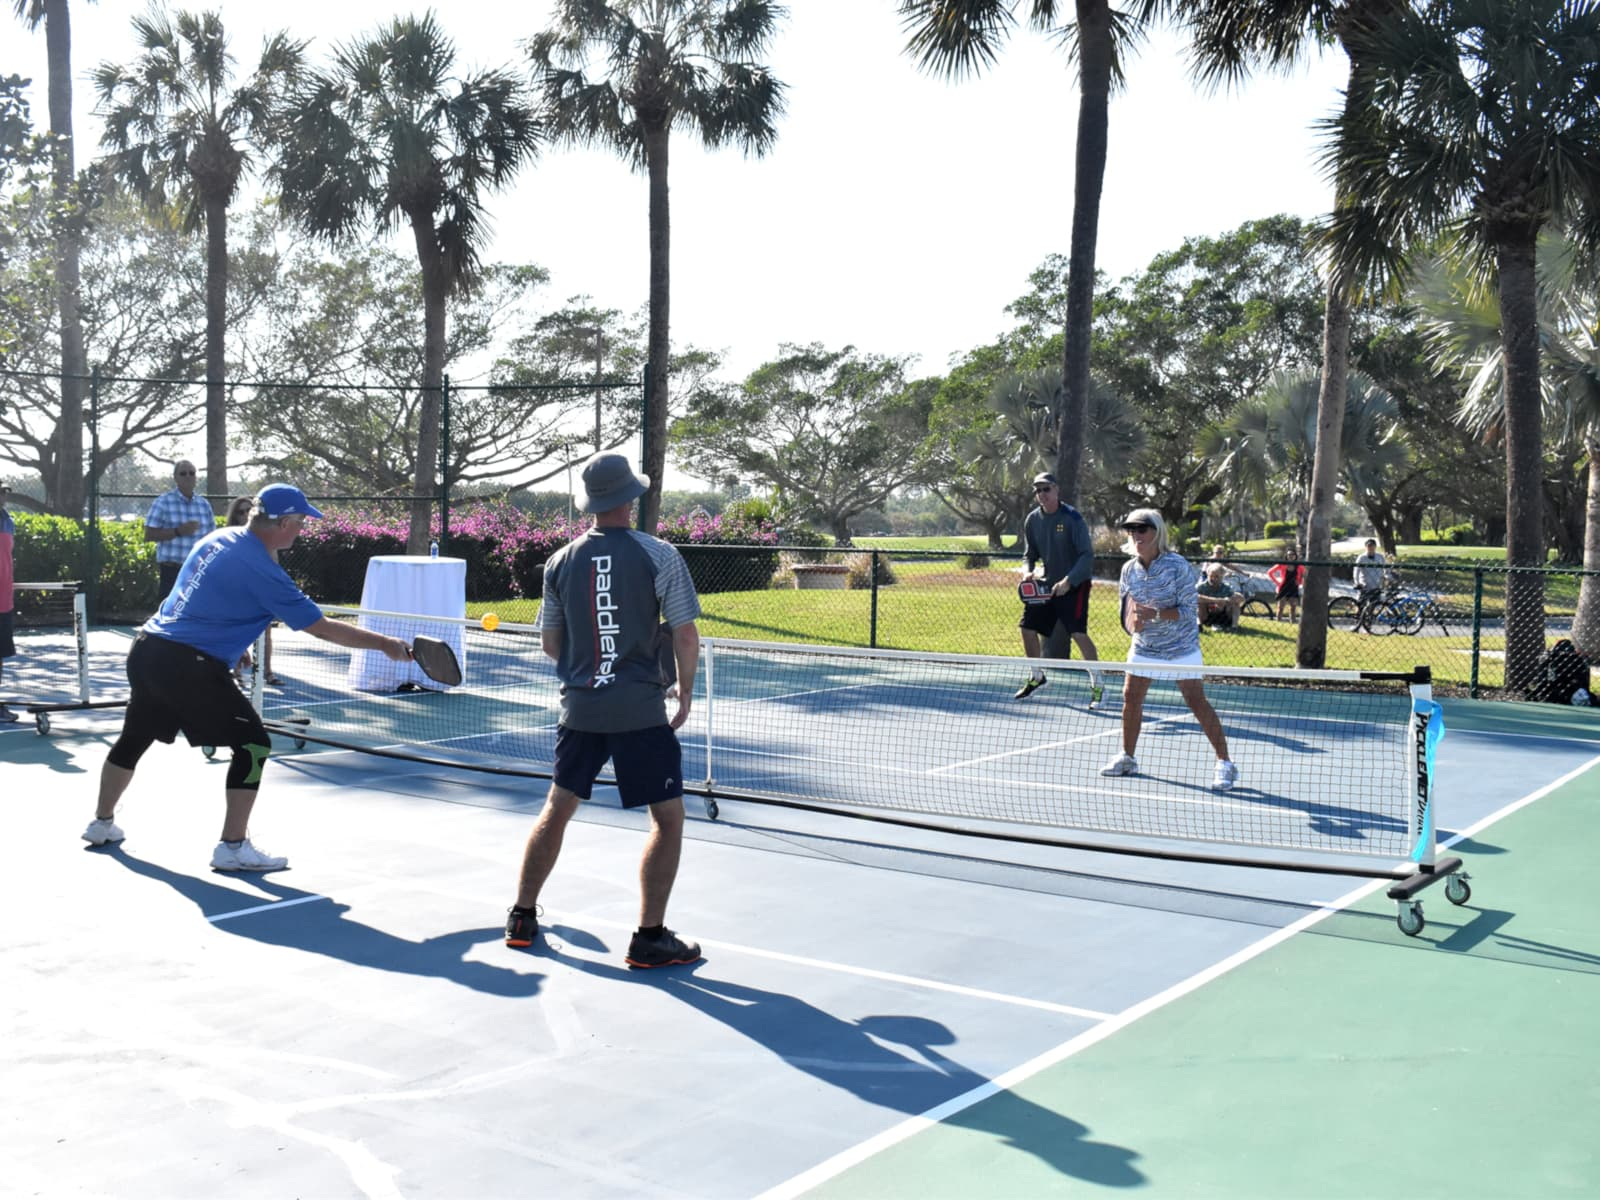 The Resort at Longboat Key Club - one of the best tennis resorts for your tennis holidays in Florida